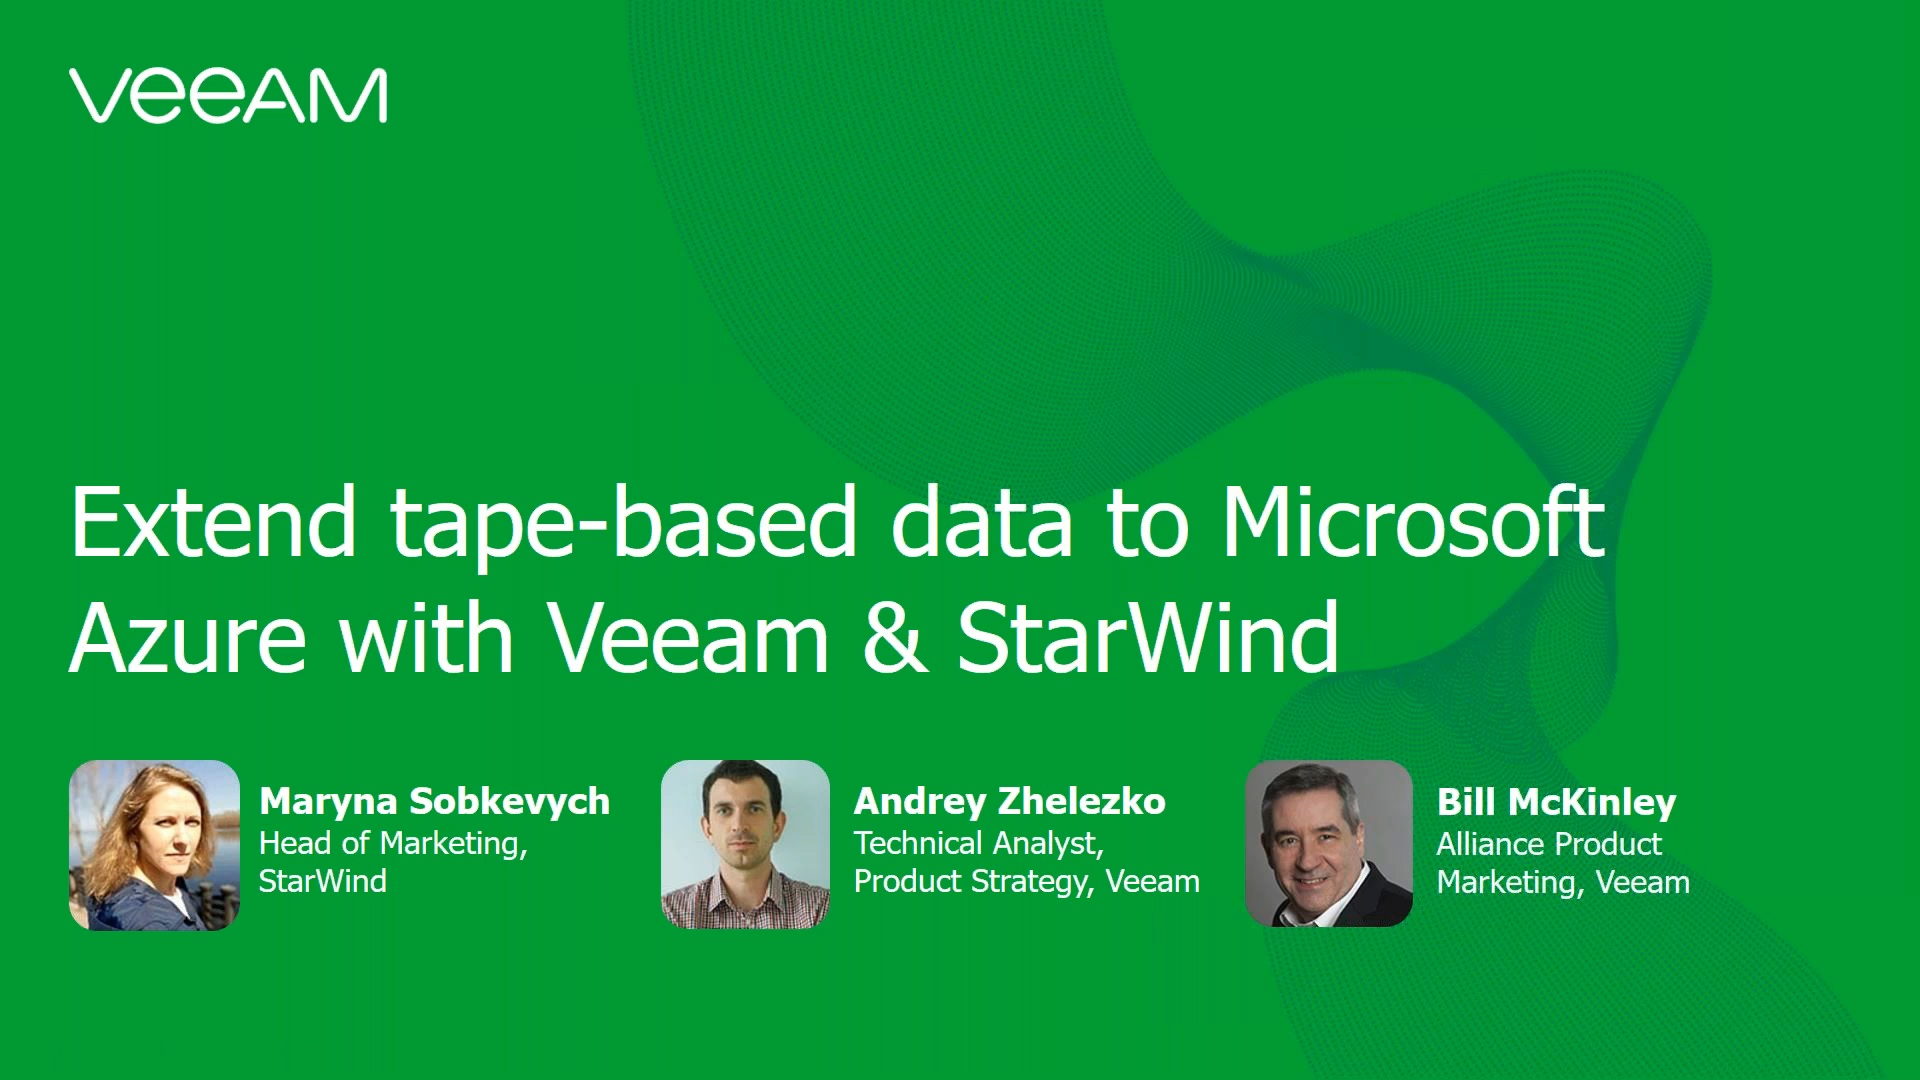 Extend tape-based data to Microsoft Azure  with Veeam & StarWind